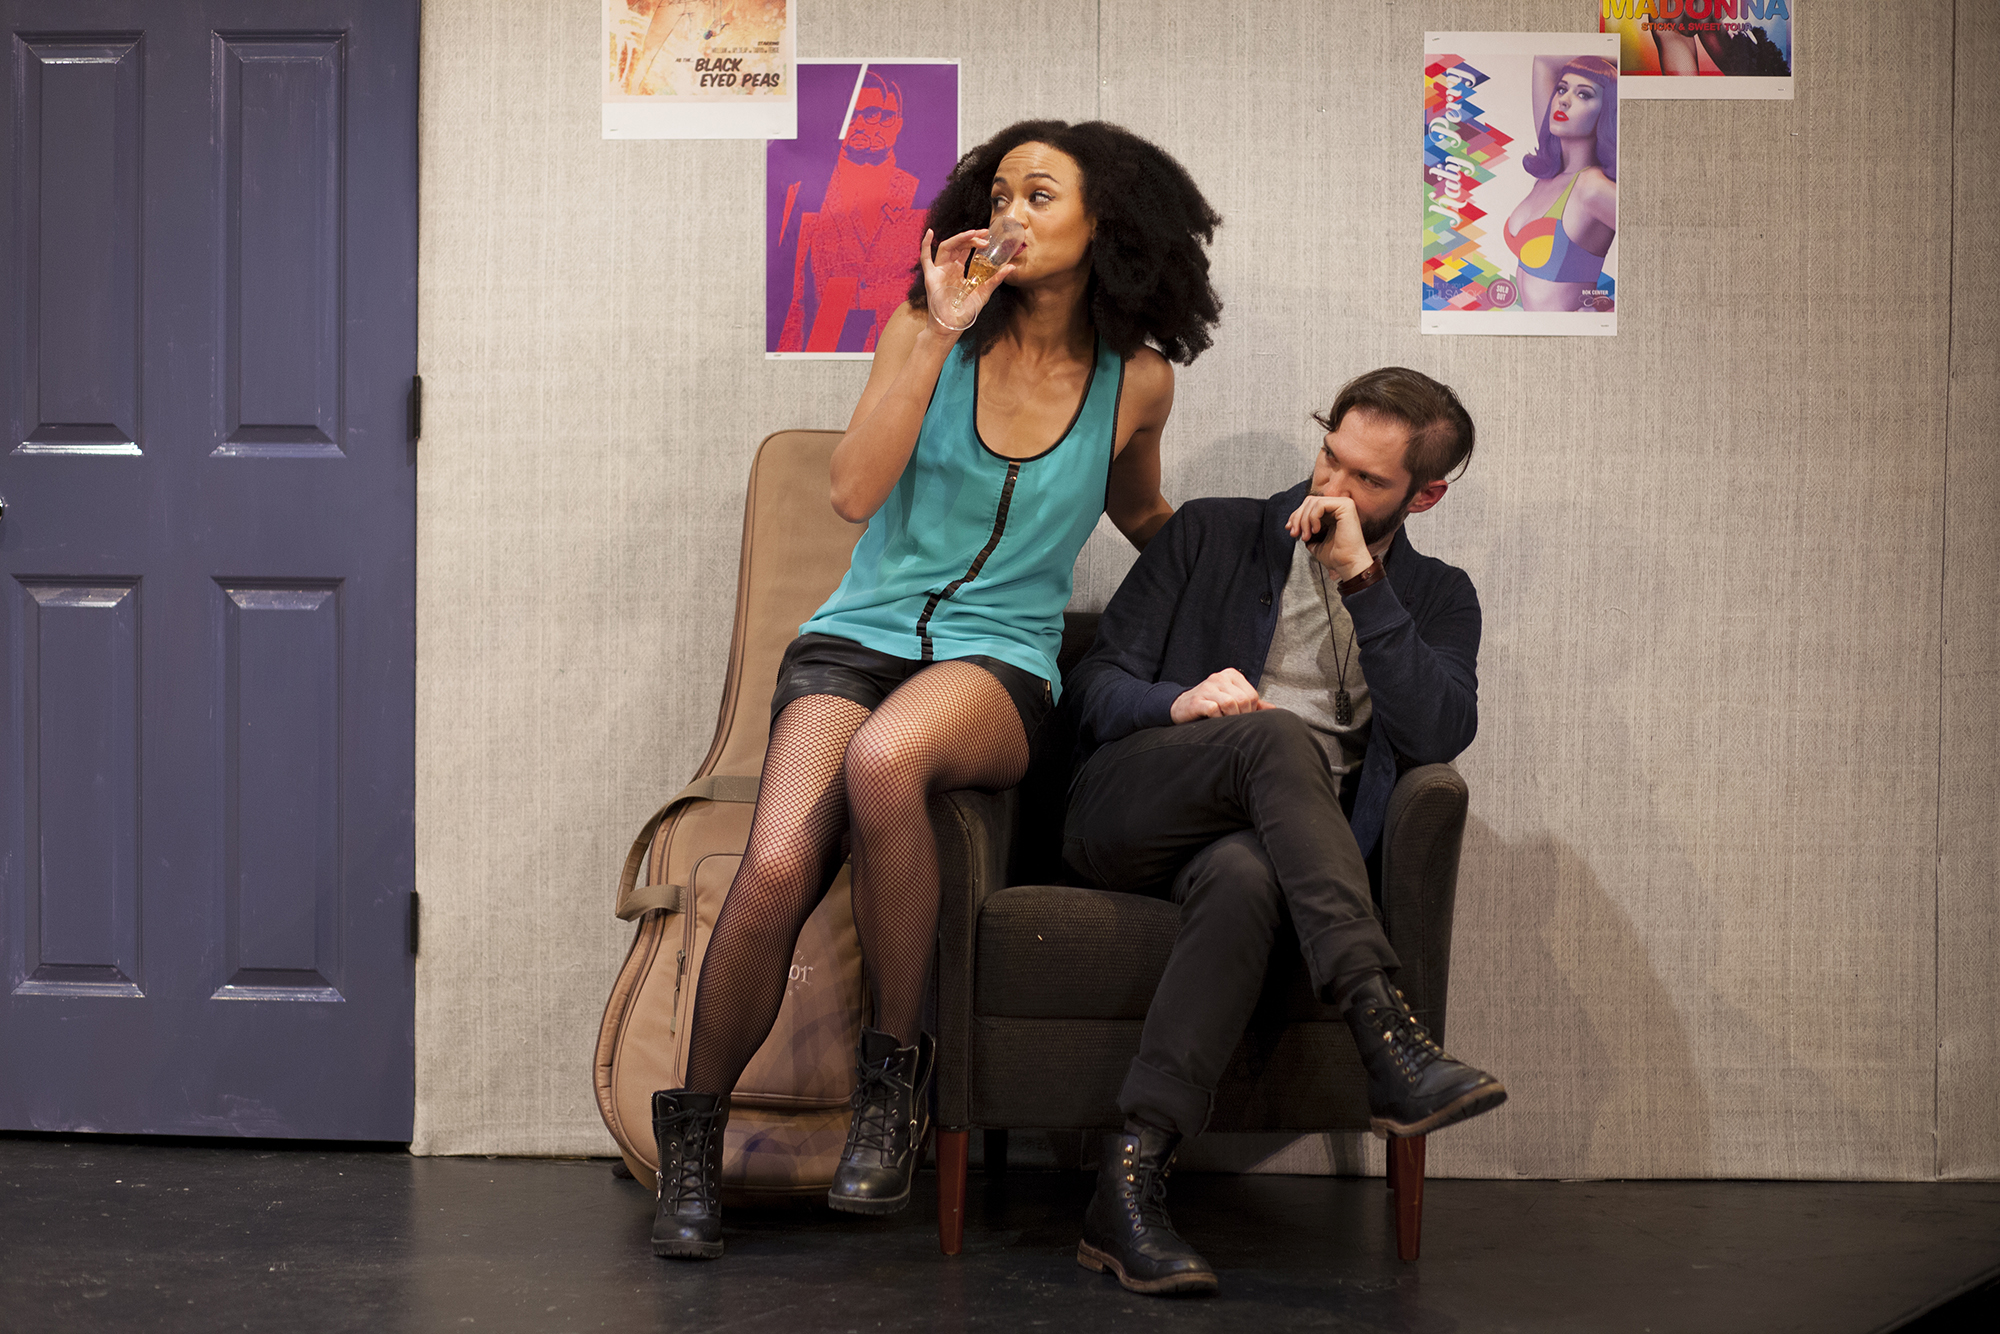 Production image of Monique Jackson (Monique St. Cyr) and James Pearce (James Parenti) in  POPTART! when produced by  Girl Just Died at TADA! Theatre in Winter 2015.Photograph by Trish Phelps.